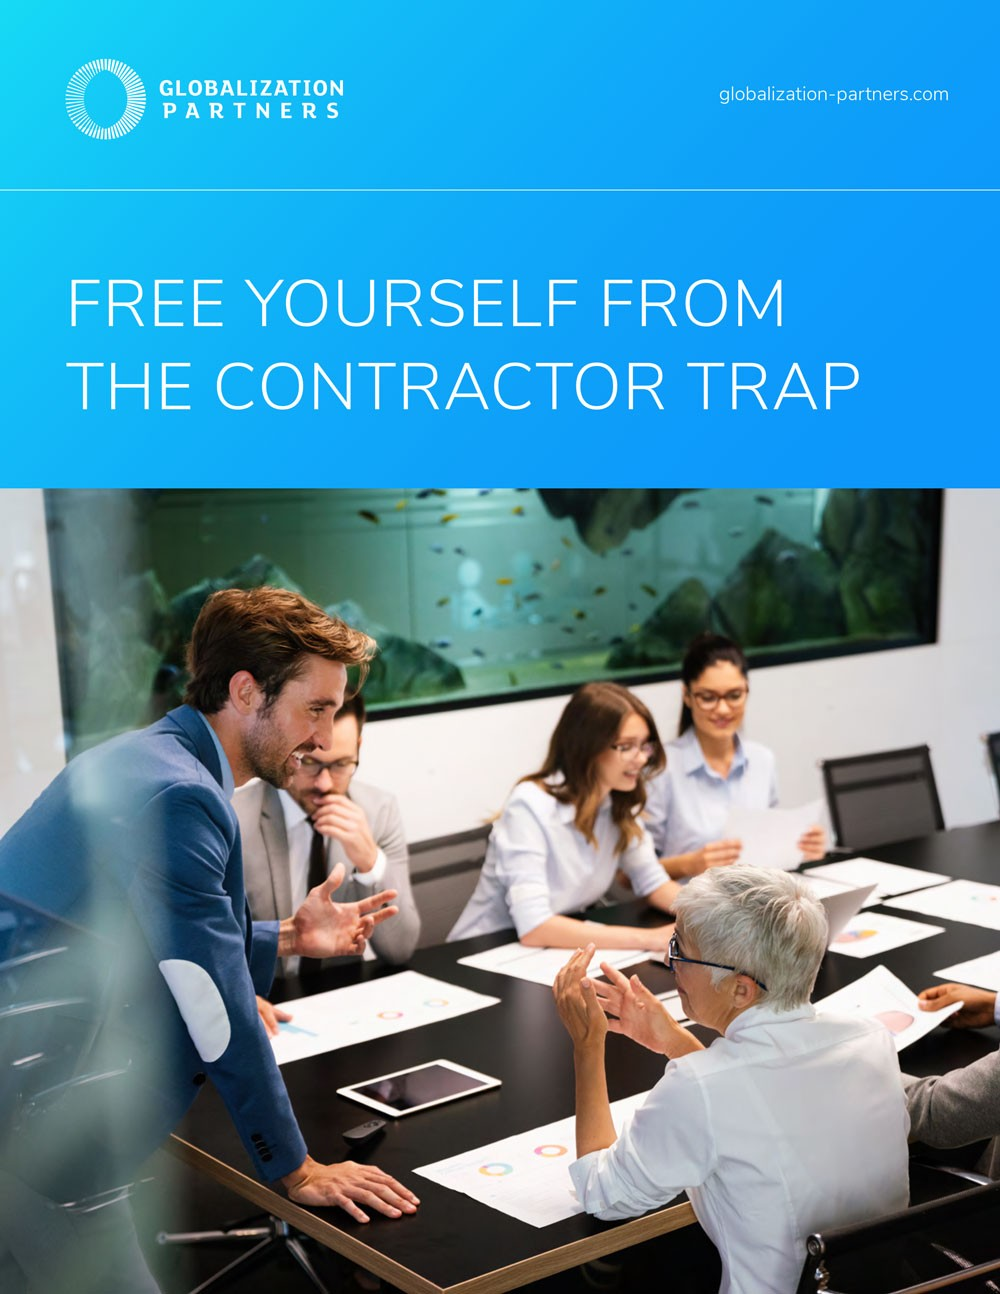 free yourself from the contractor trap whitepaper cover - Free Yourself From The Contractor Trap Whitepaper